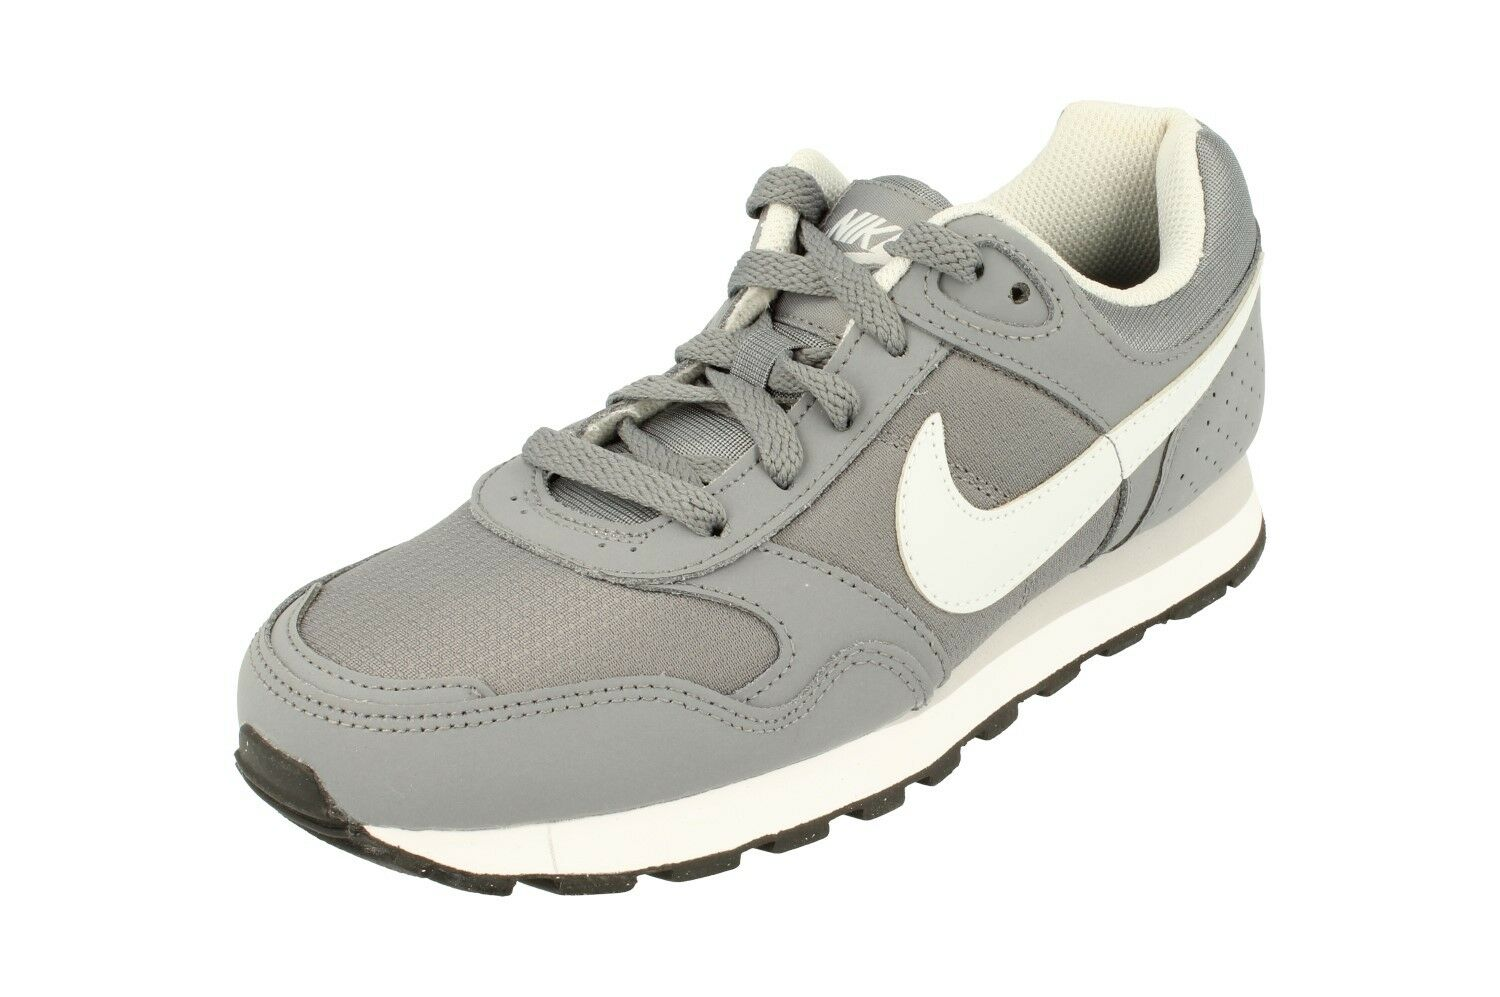 Nike Md Runner Zapatos GS Trainers 629802 Sneakers Zapatos Runner 001 97c7dc